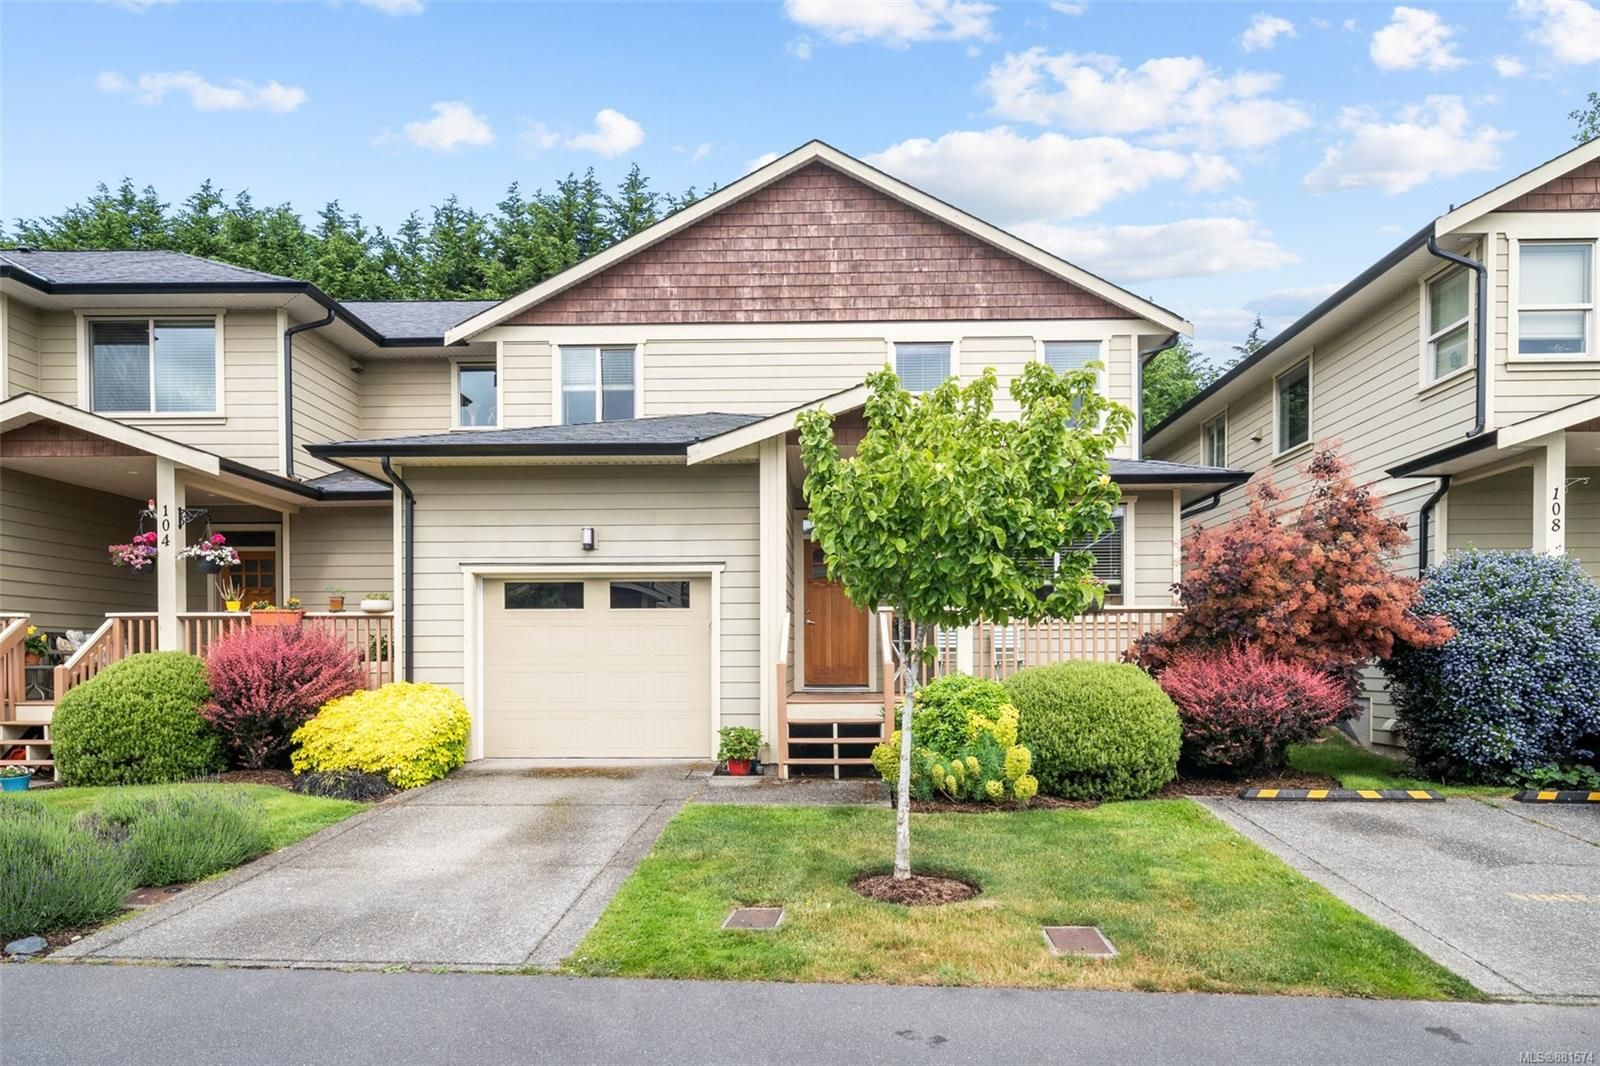 Main Photo: 106 2253 Townsend Rd in : Sk Broomhill Row/Townhouse for sale (Sooke)  : MLS®# 881574